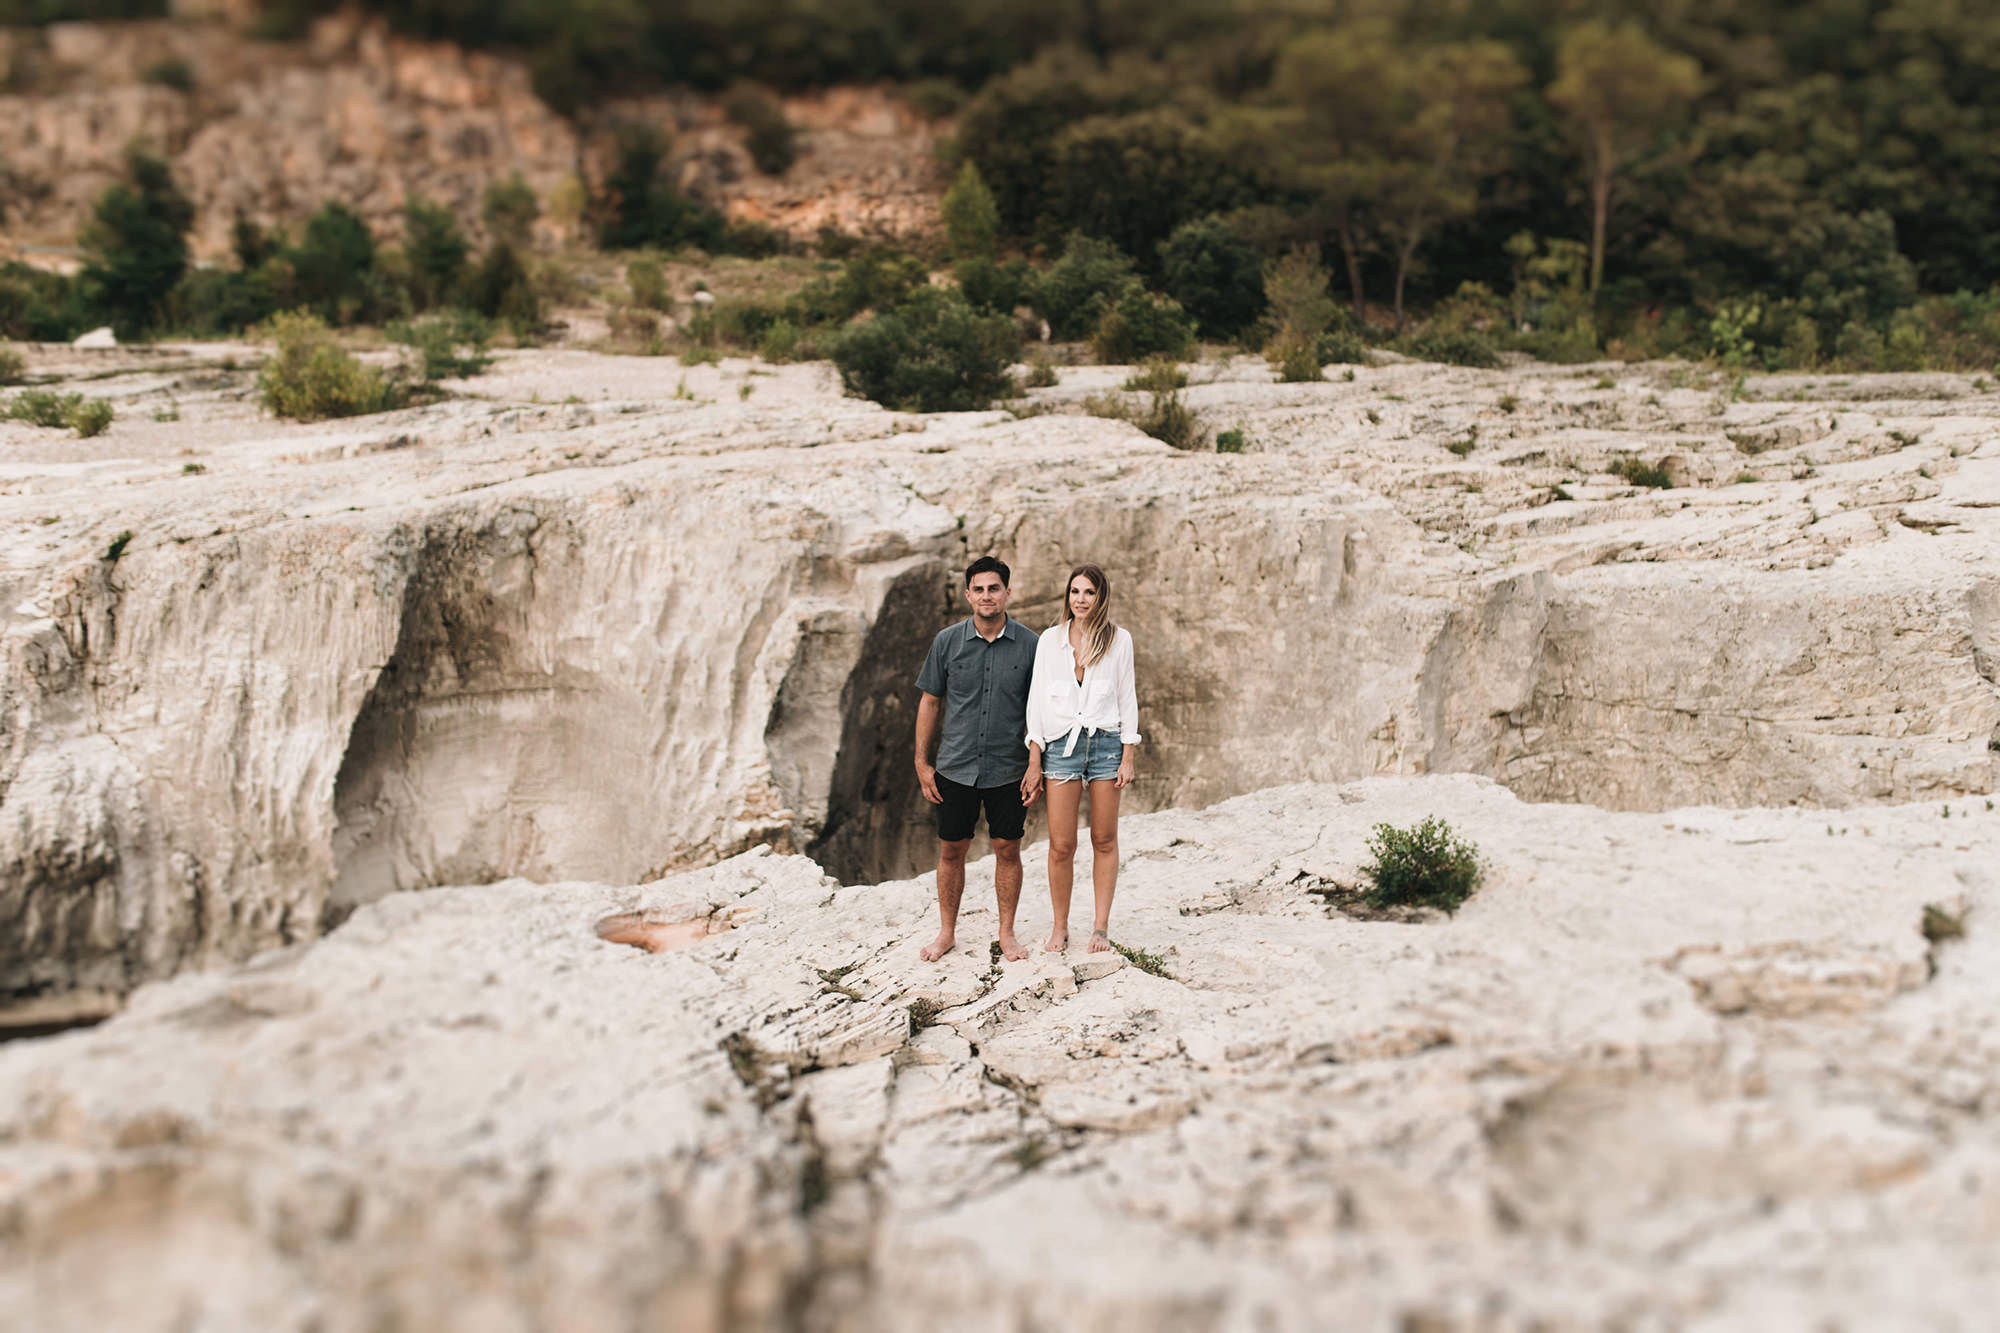 engagement_session_ardeche_river_C+M_neupapphotography-120.jpg